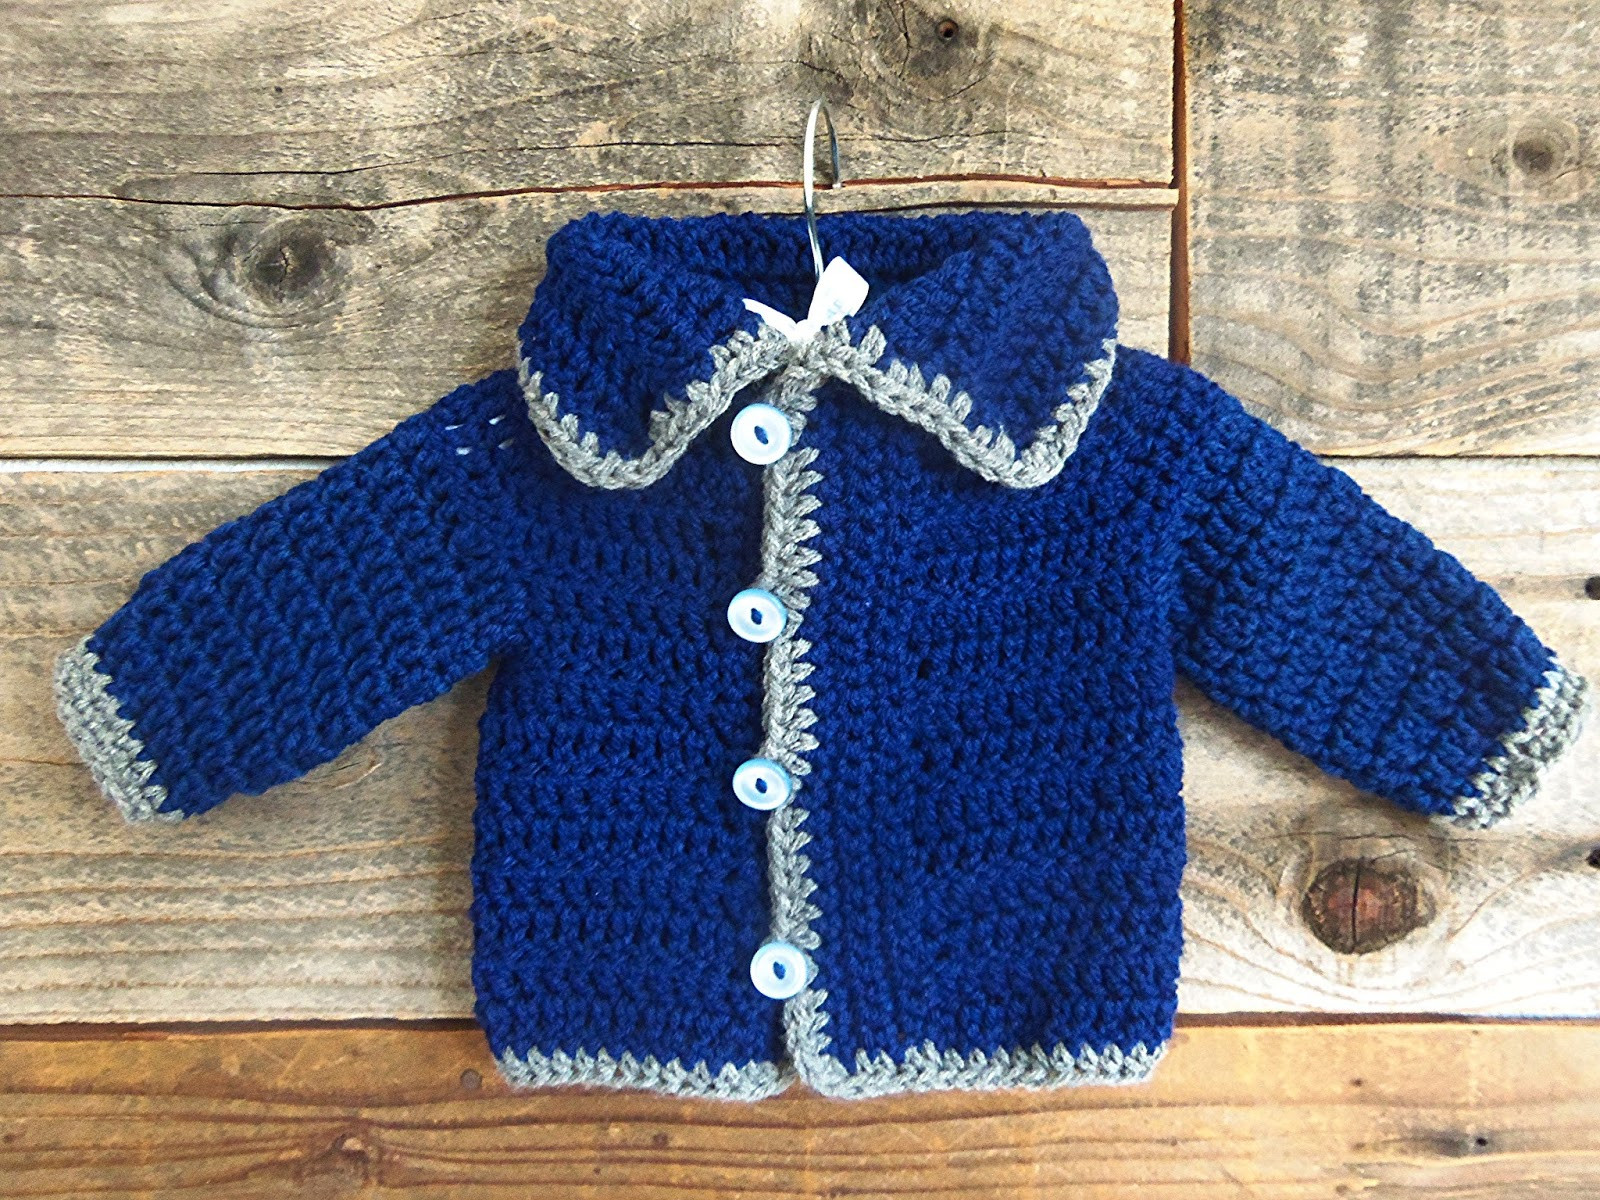 Crochet toddler Sweater Fresh 3squeezes Easy Crochet Baby Sweater Of Lovely 50 Photos Crochet toddler Sweater